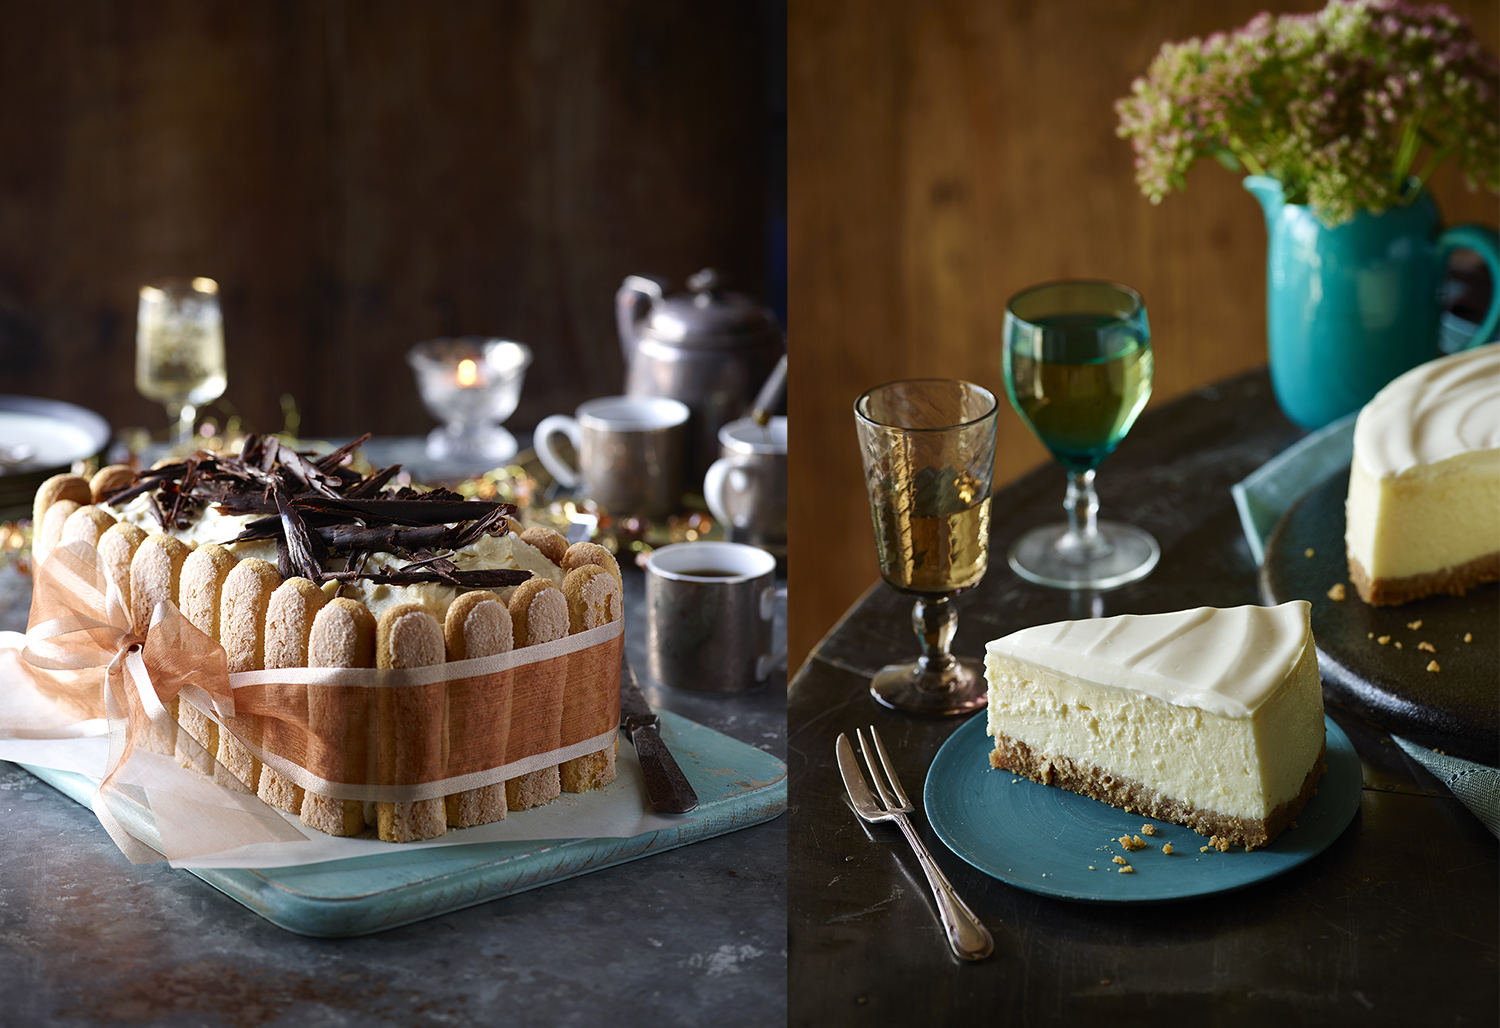 Sainsbury's Baking Book Tiramisu Photo by Food Photographer Lauren Mclean